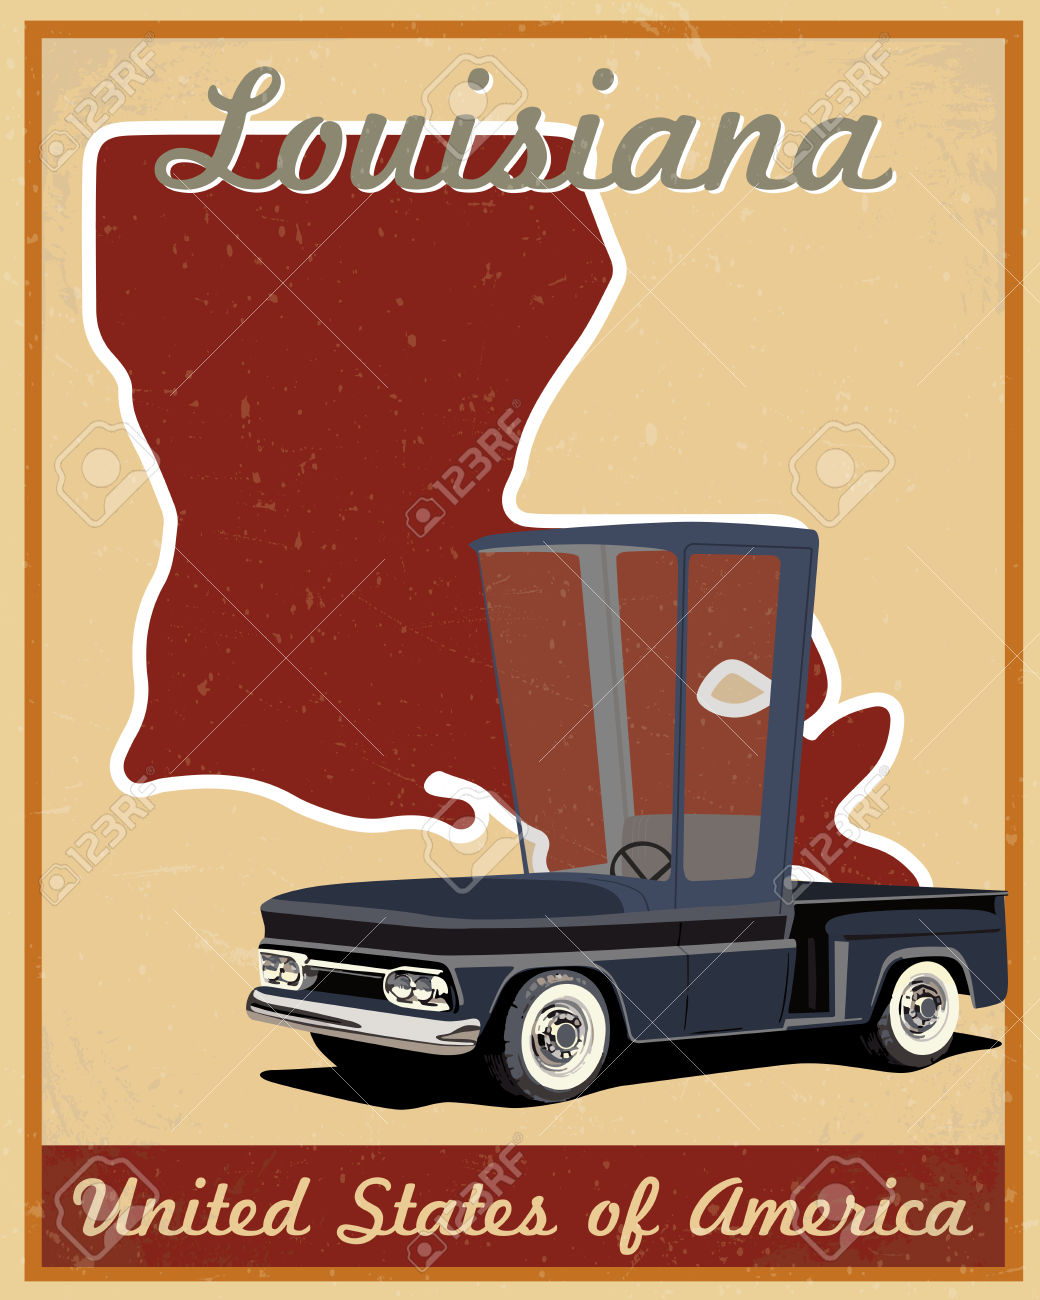 Road trip united states clipart vector free library Louisiana Road Trip Vintage Poster Royalty Free Cliparts, Vectors ... vector free library